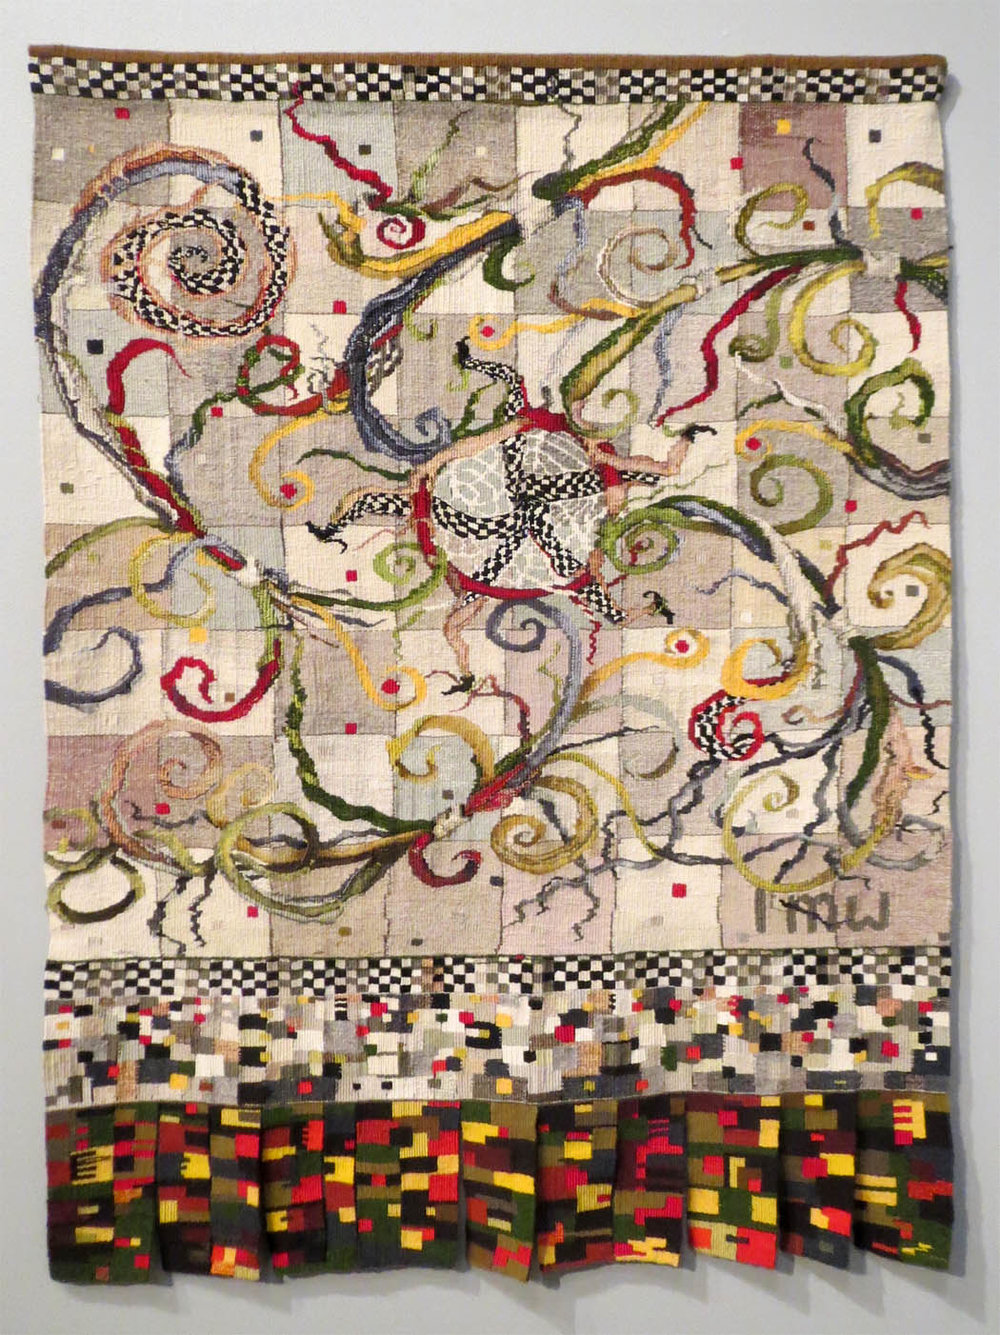 Linda Wallace, The Journey Back, 44 x 33 inches, cotton seine twine warp, wool, linen, cotton, silk weft, tapestry weaving